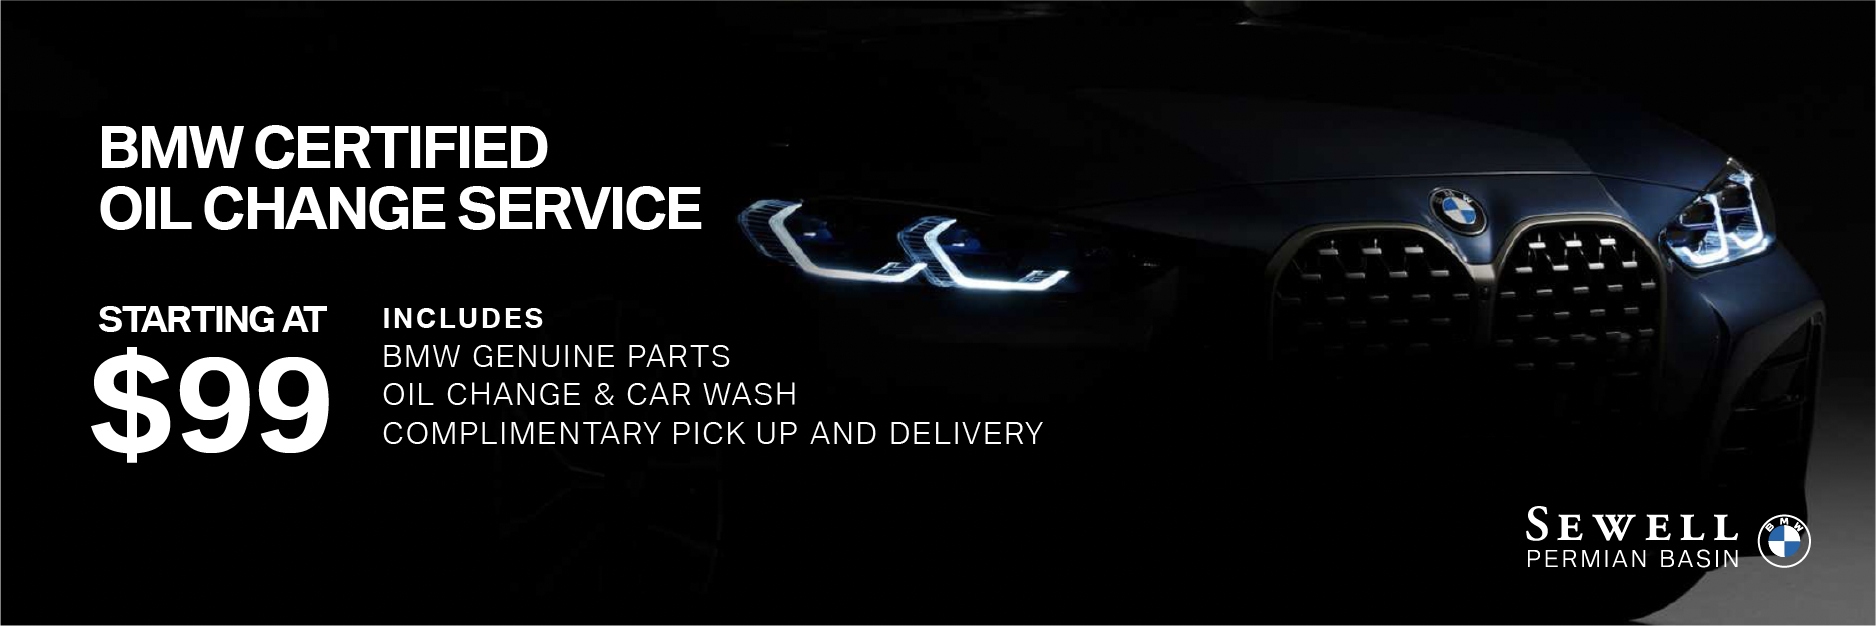 BMW Certified Oil Change Service Starting at $99